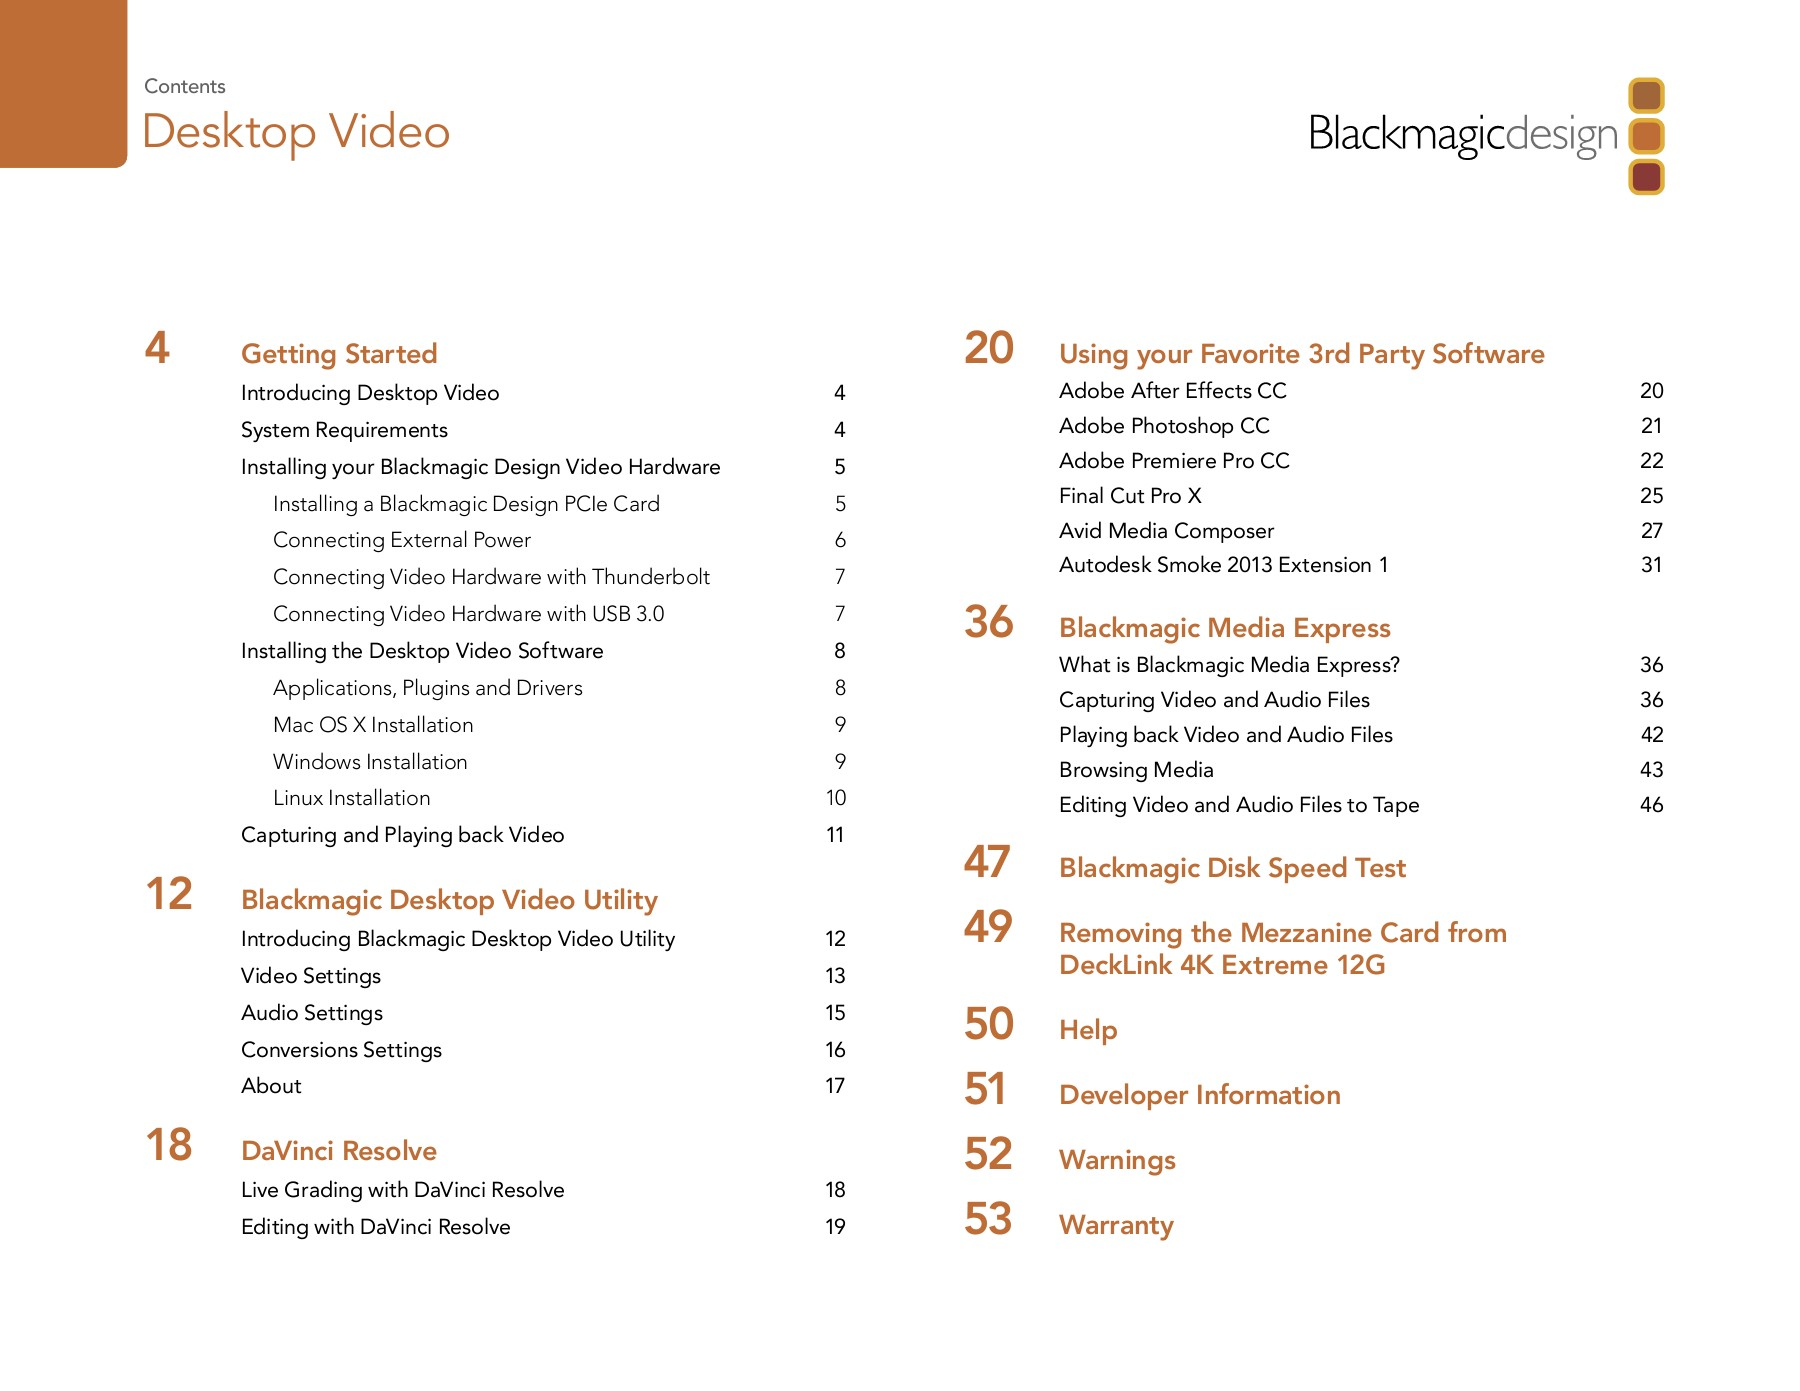 Operation Manual Desktop Video - Blackmagic Design Pages 1 - 50